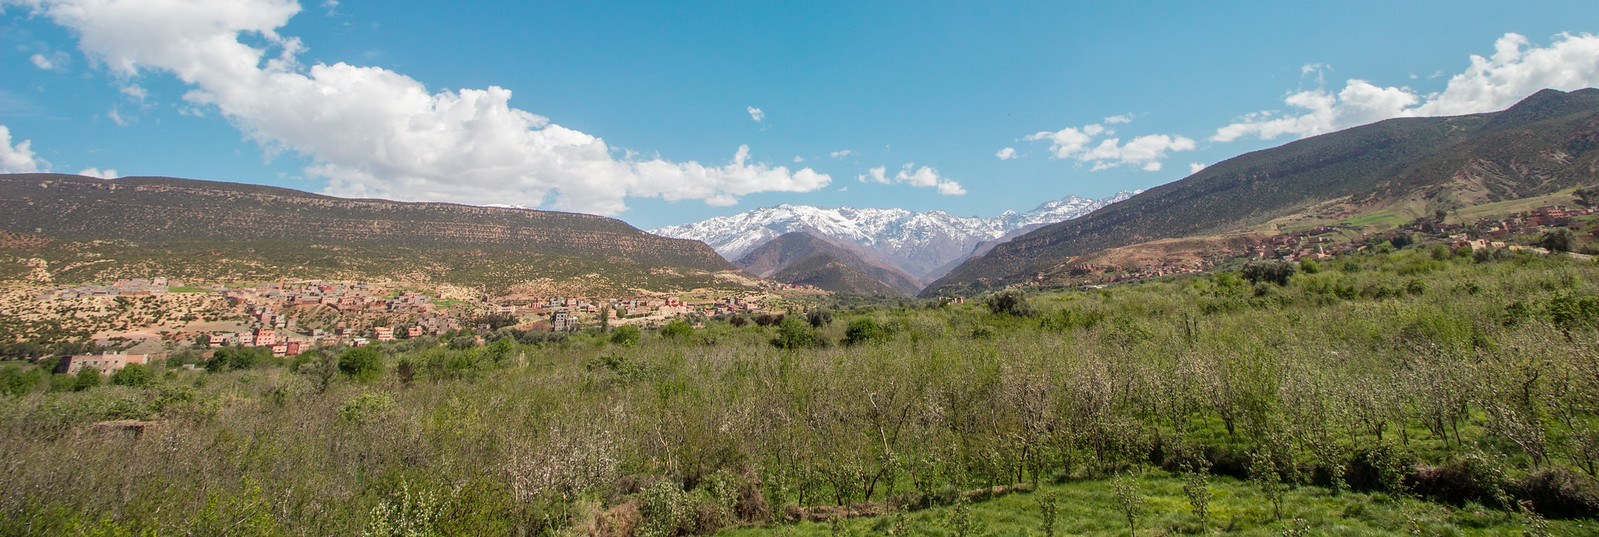 View across the Imlil valley towards Toubkal from Asni.